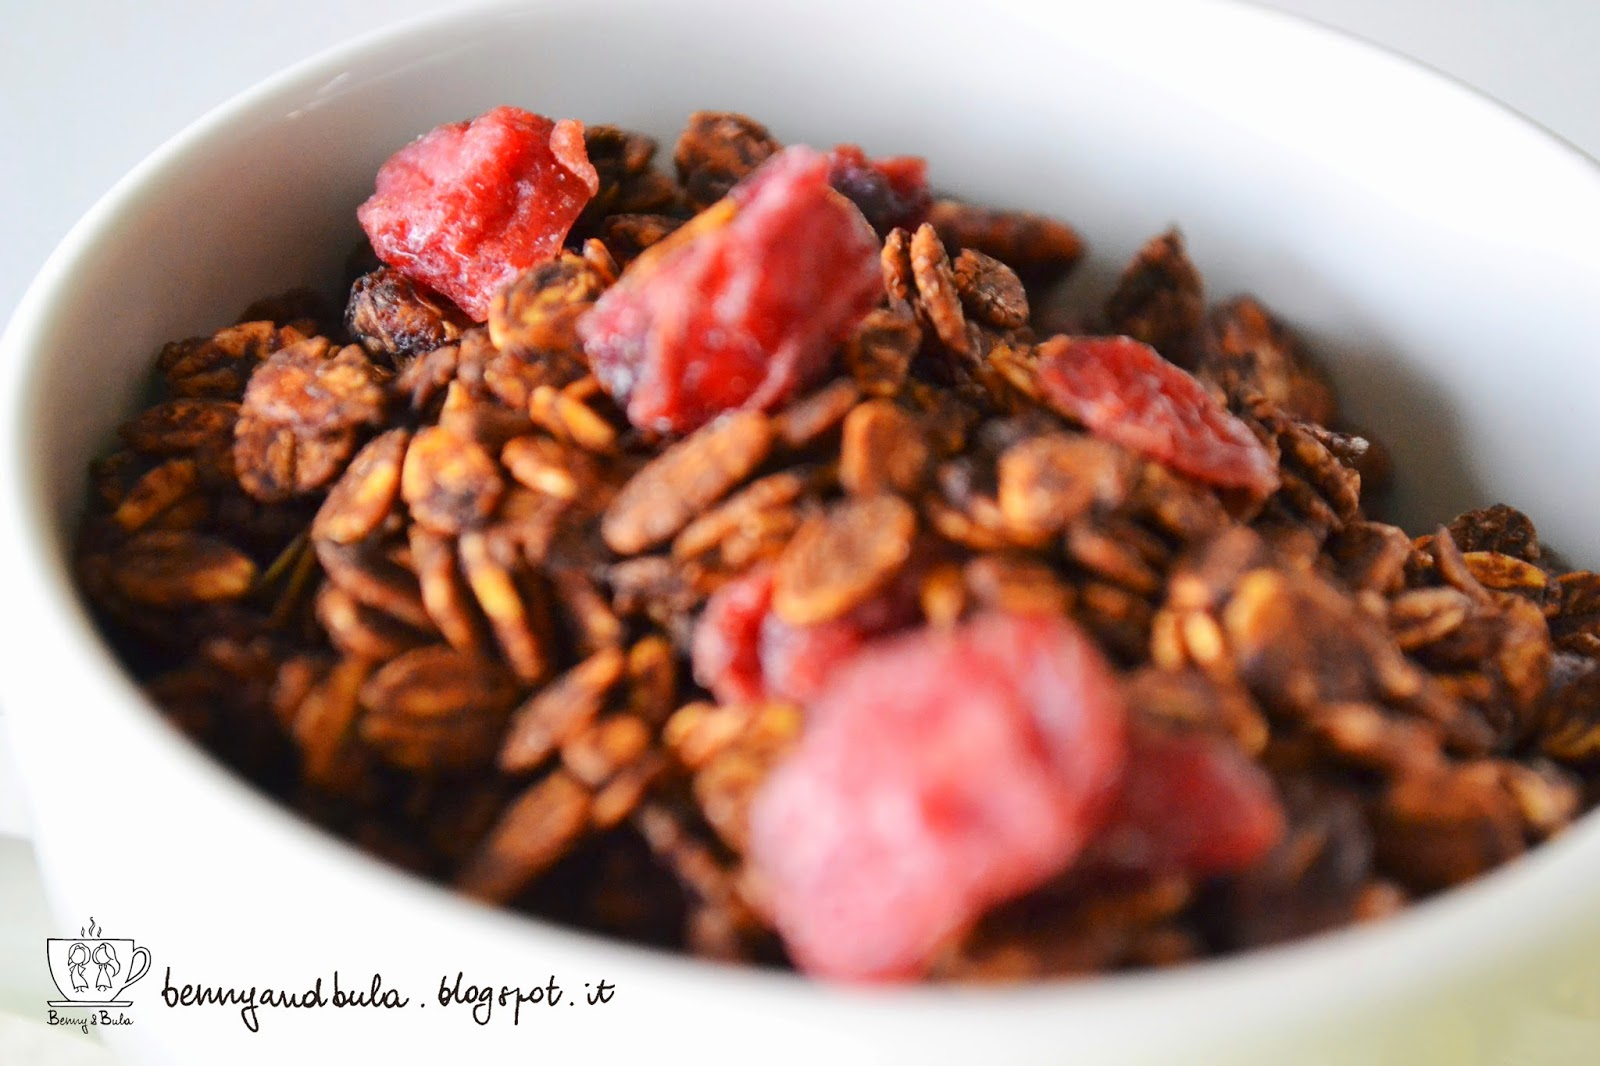 ricetta granola con cacao pistacchi e mirtilli/ homemade granola with cocoa pistachio and berries recipe